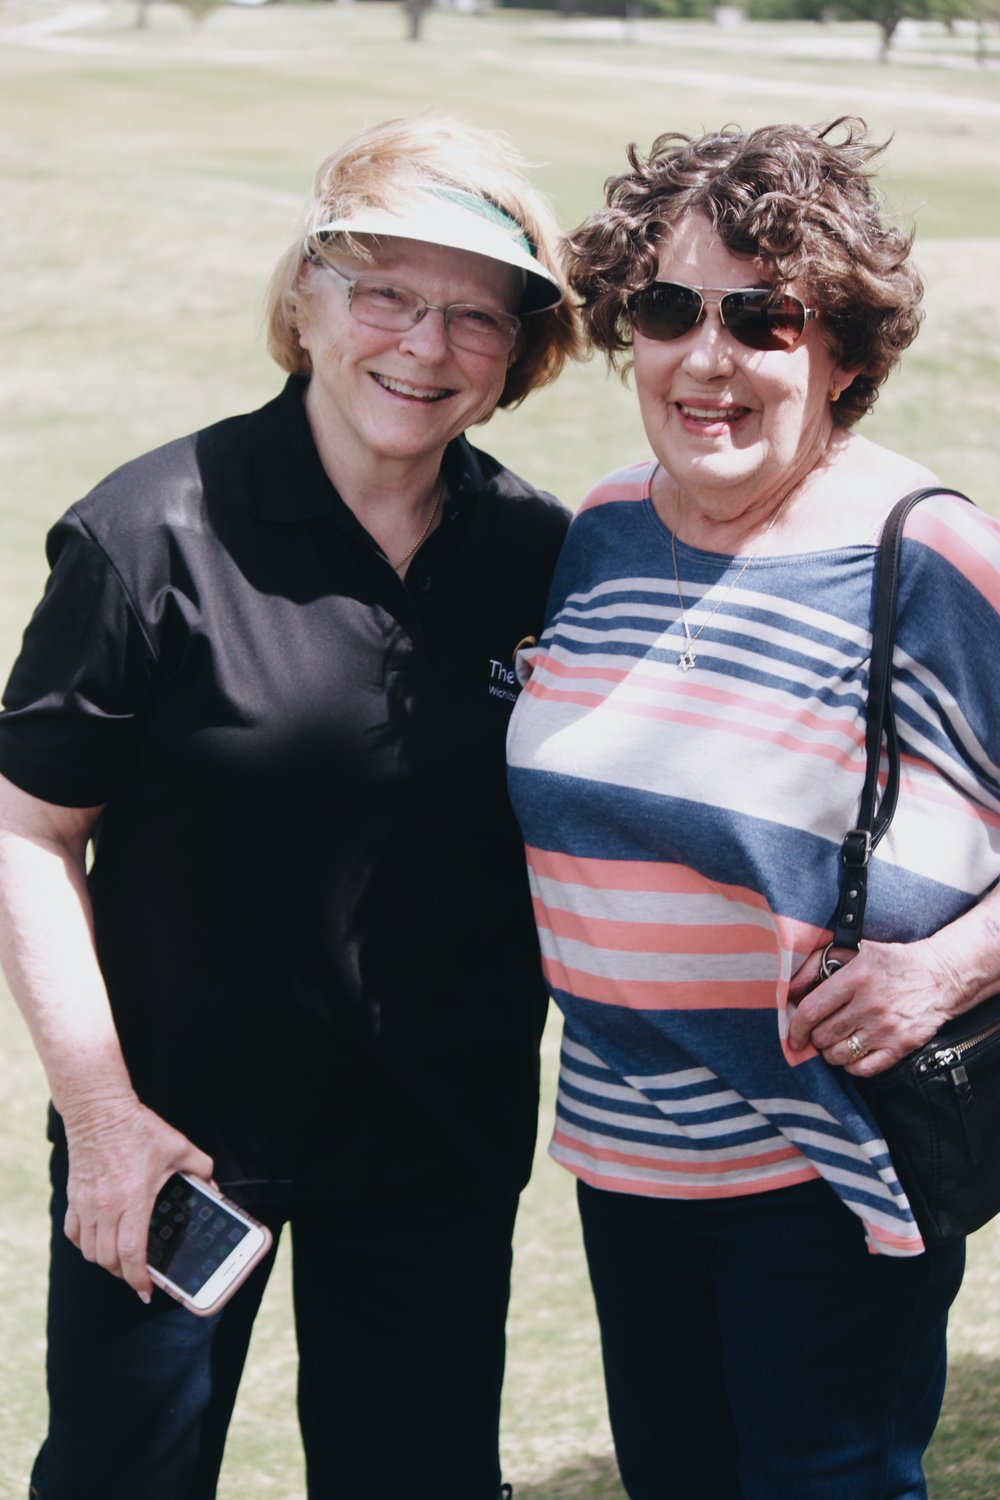 (left to right) Parent, Penney Denman, and previous Executive Director, Marlene Goldstein